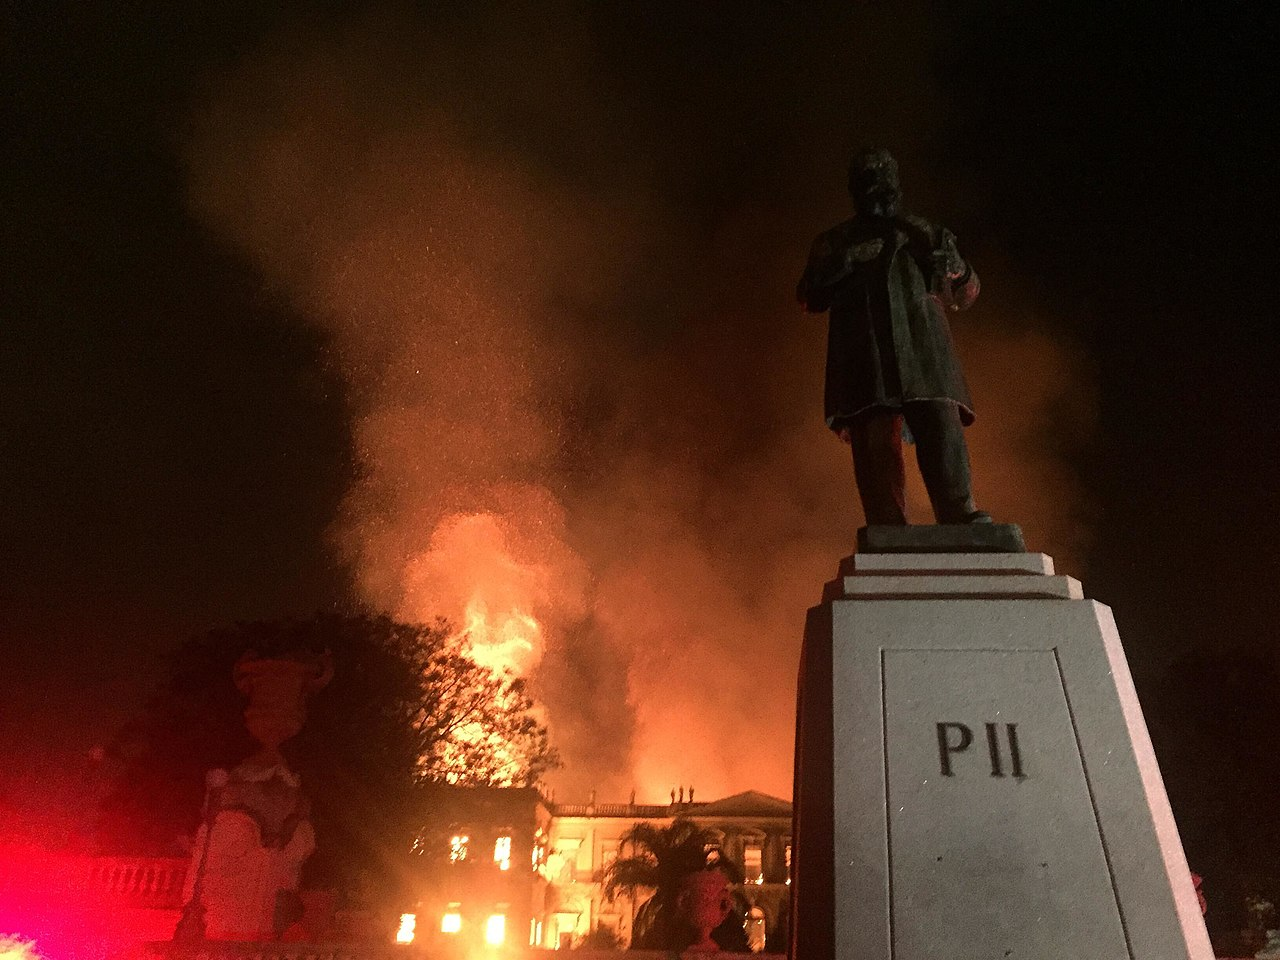 Fire at the National Museum of Brazil in Rio de Janeiro